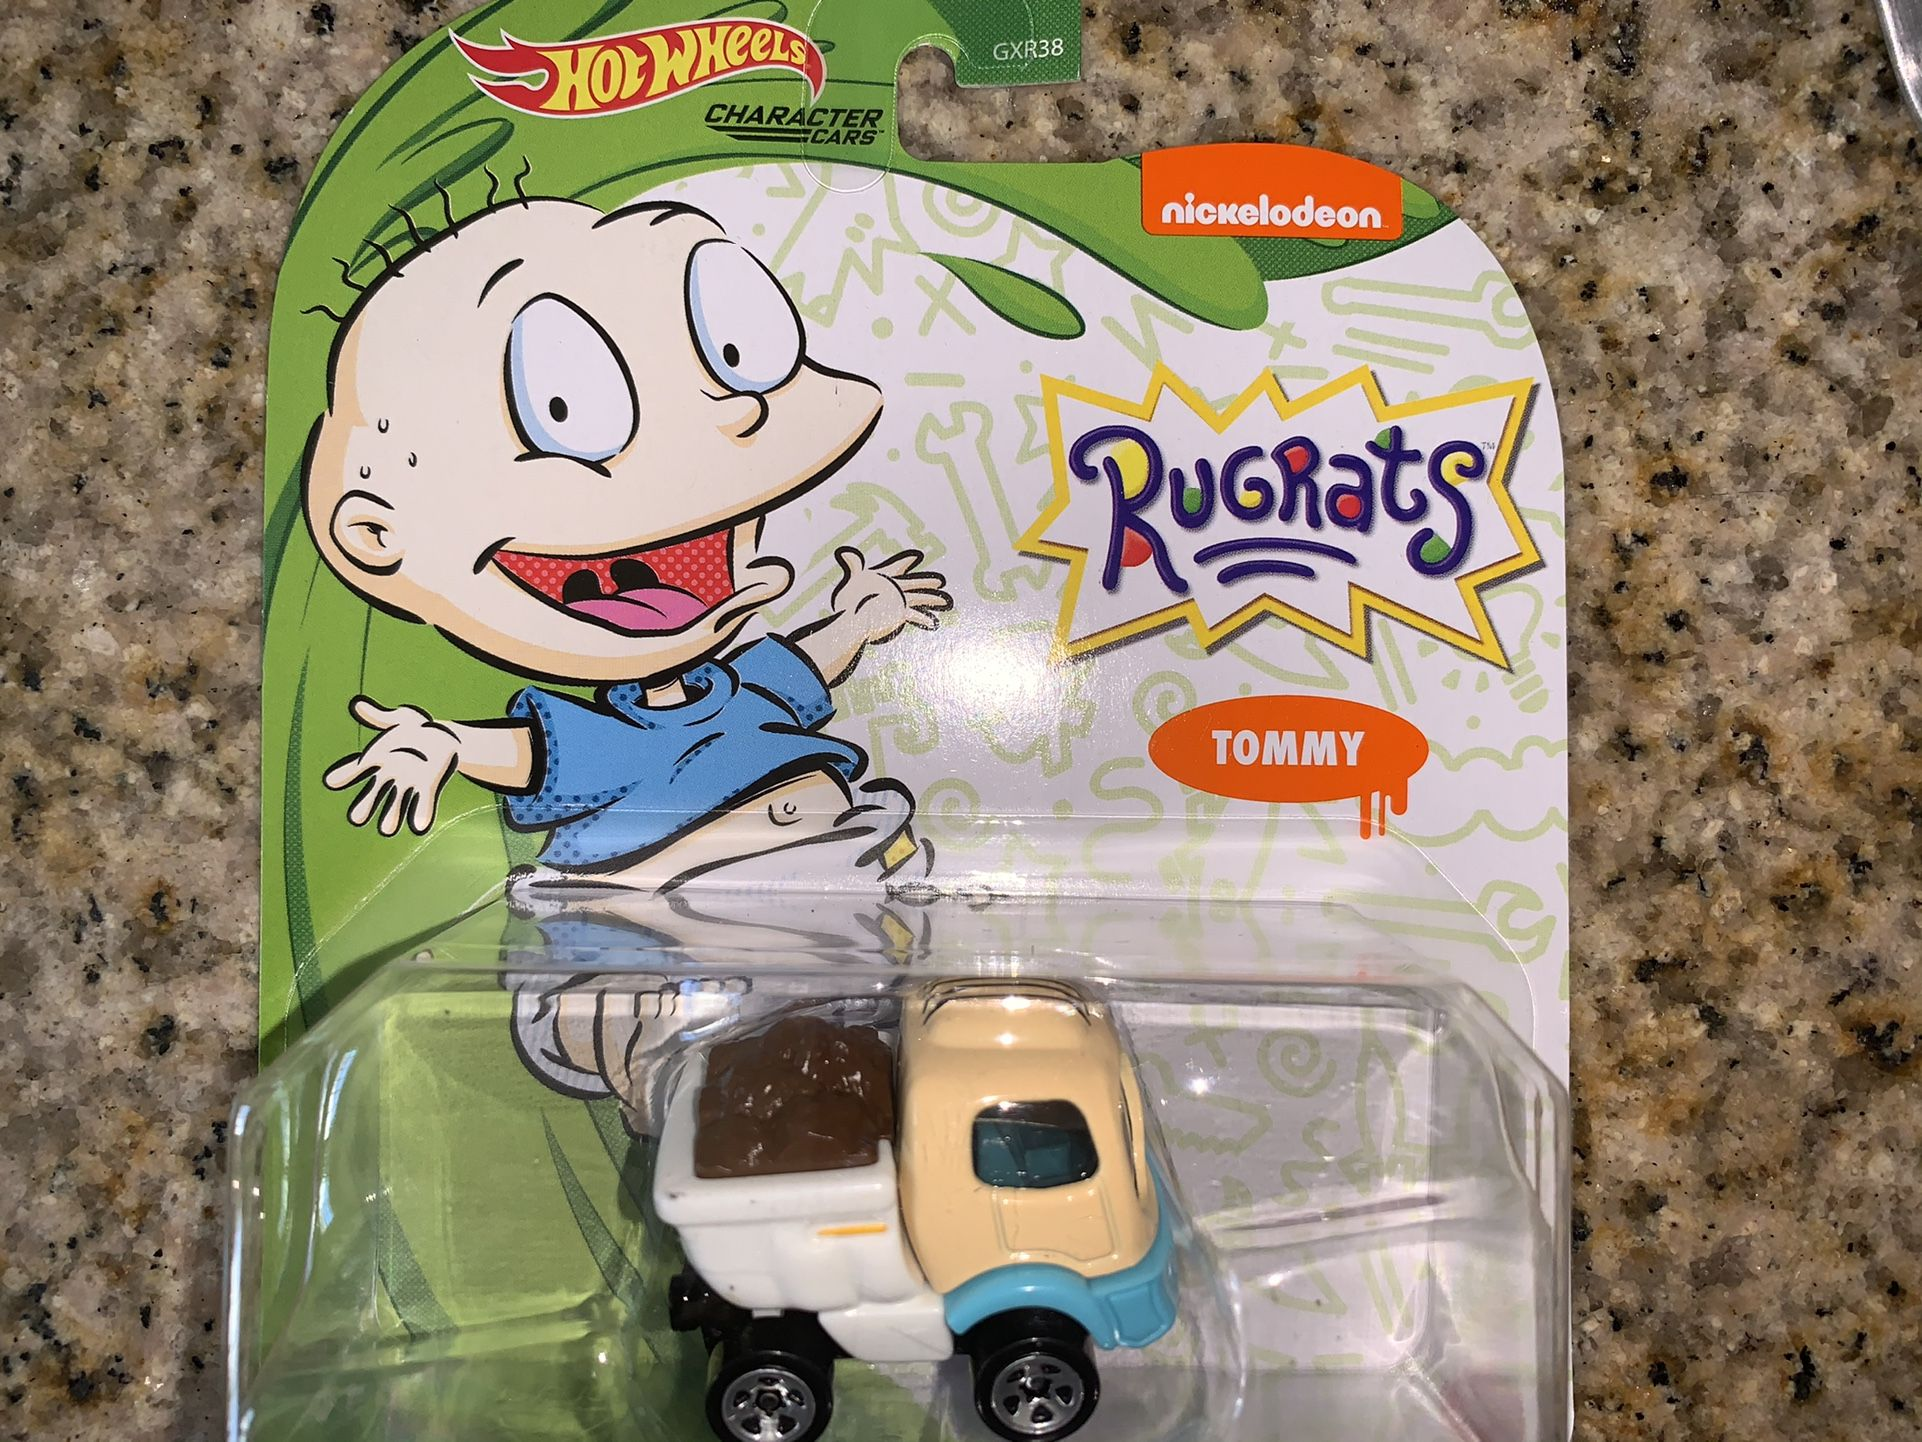 Entire Rugrats Hot Wheel Collection